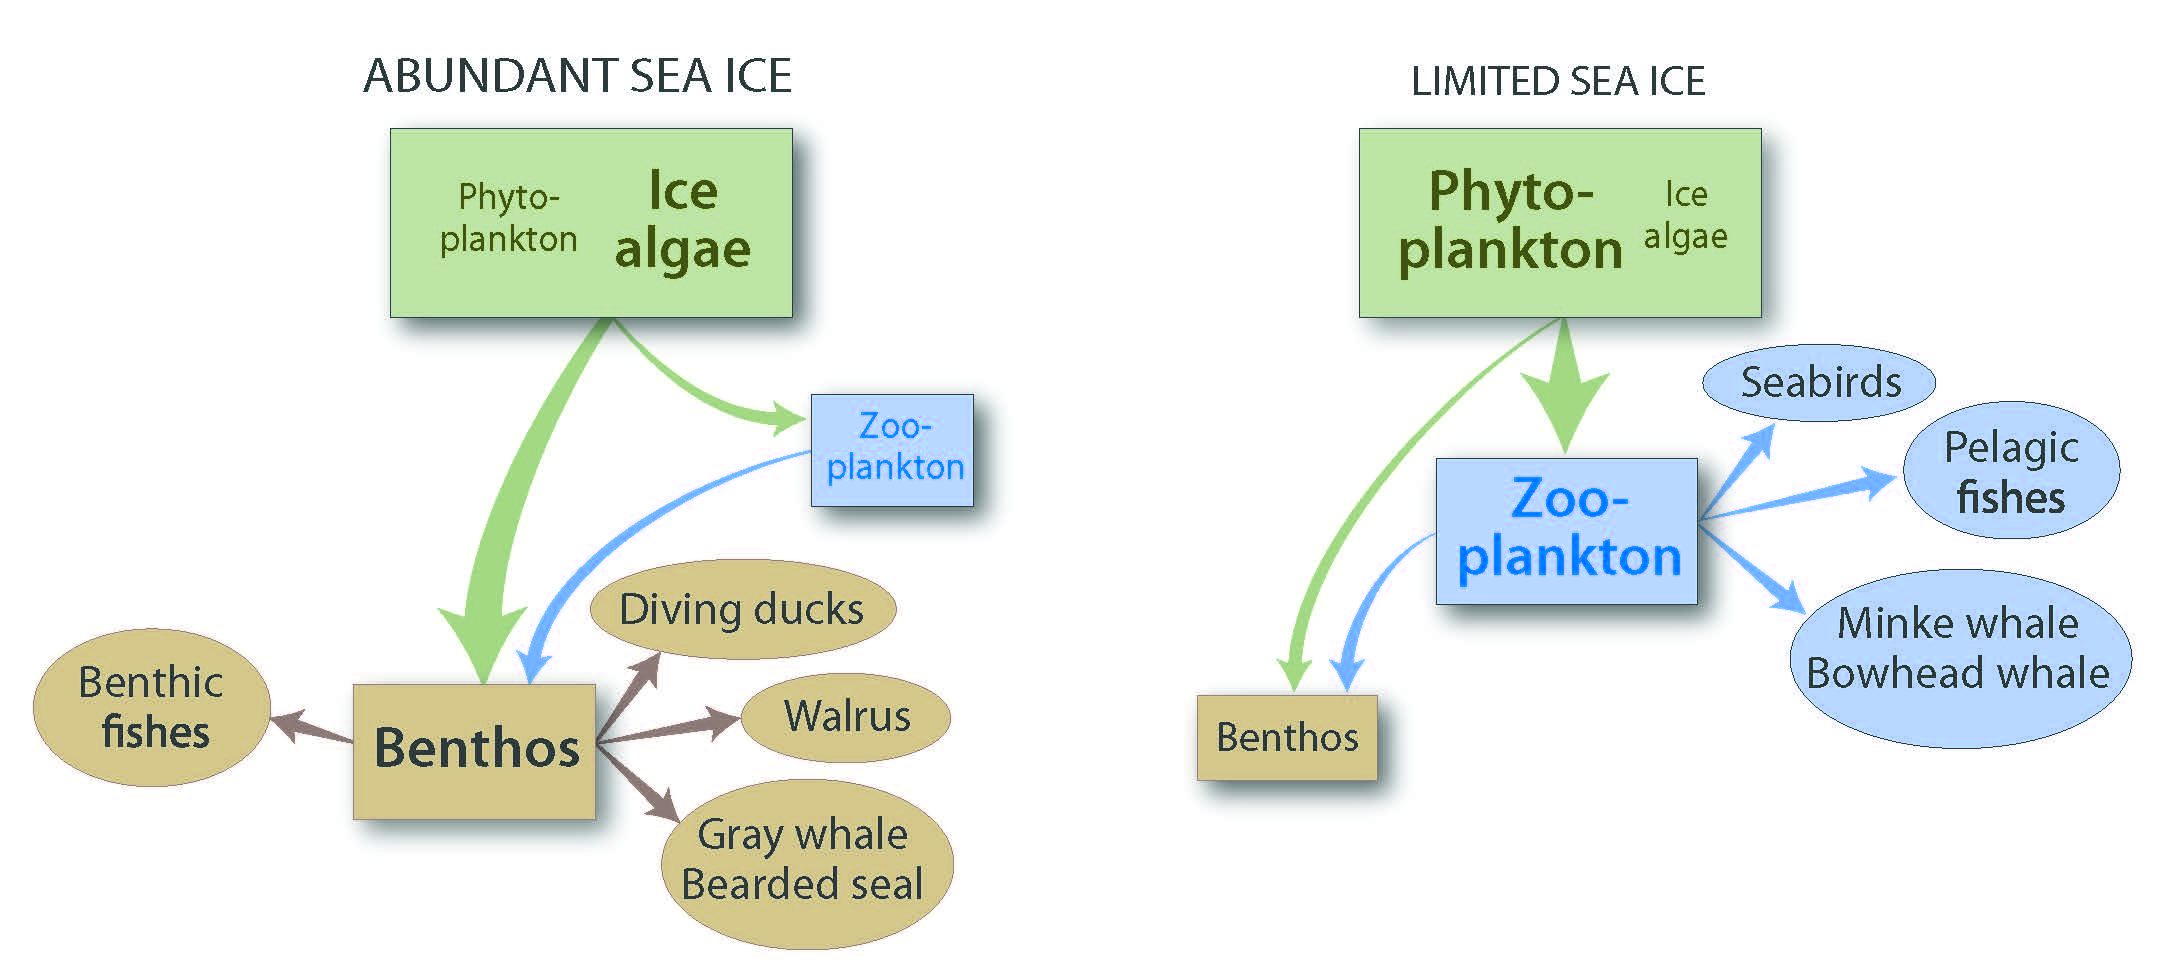 LifeLinkedtoIce Sea ice Ecosystem structure